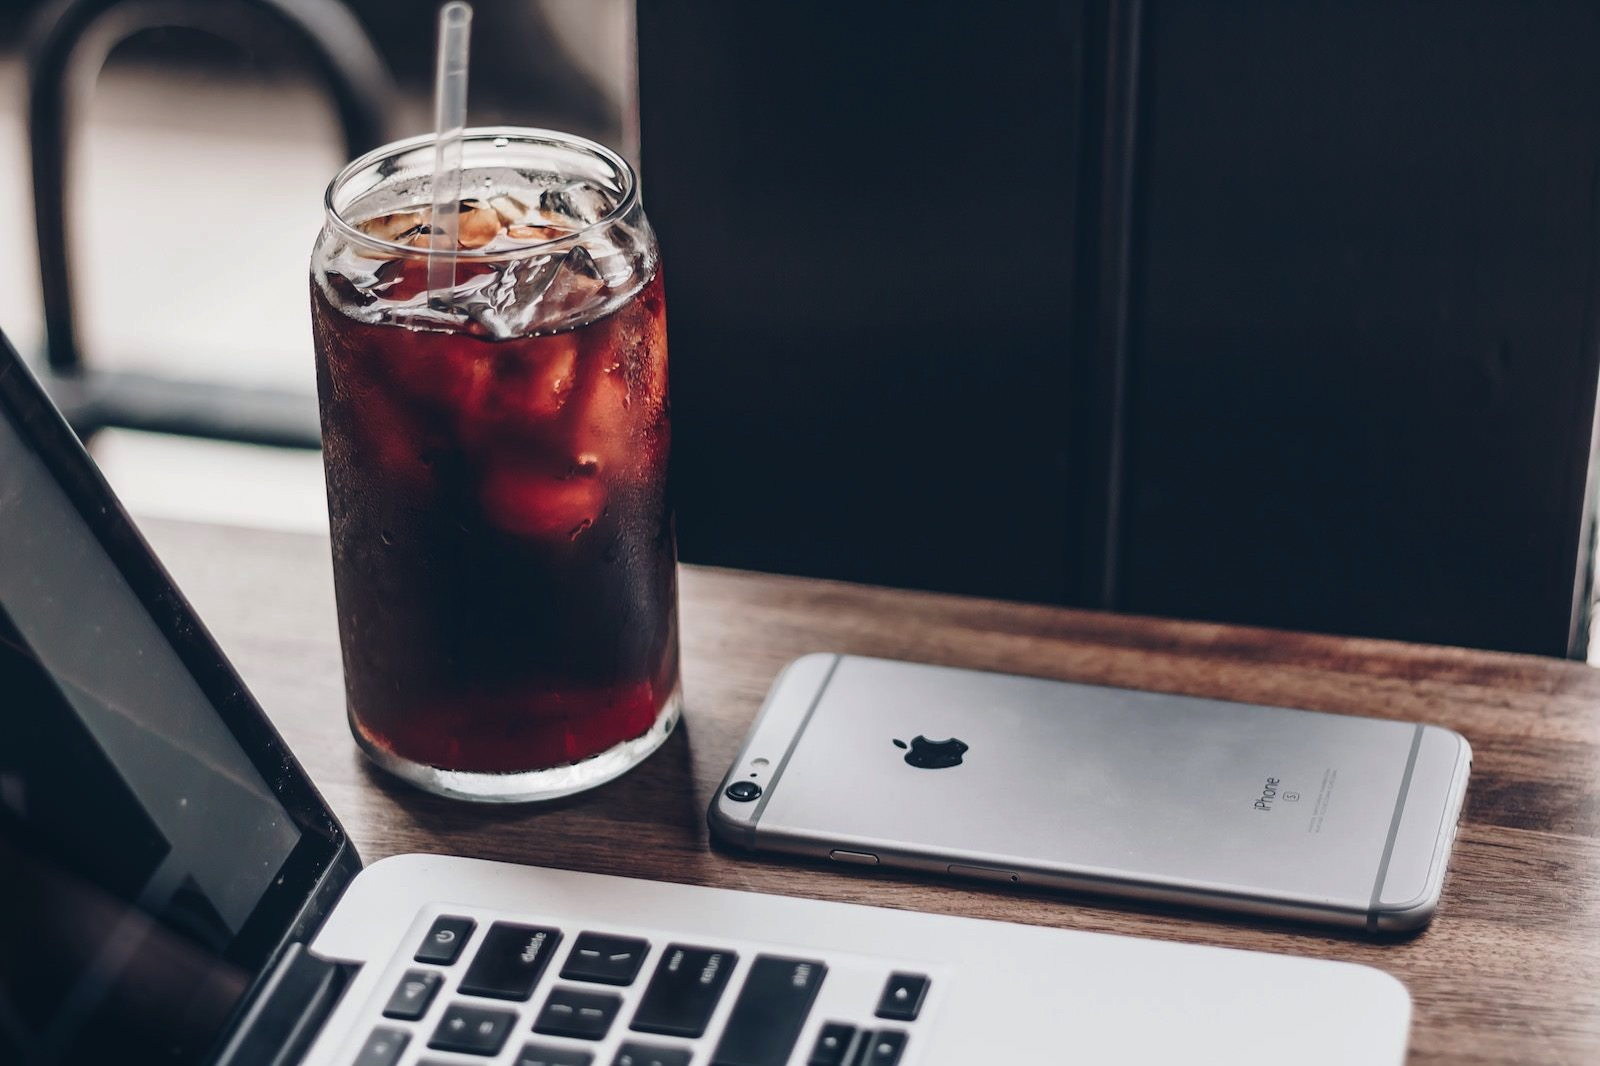 Ben kolde 365817 unsplash iphone 6s with ice coffee